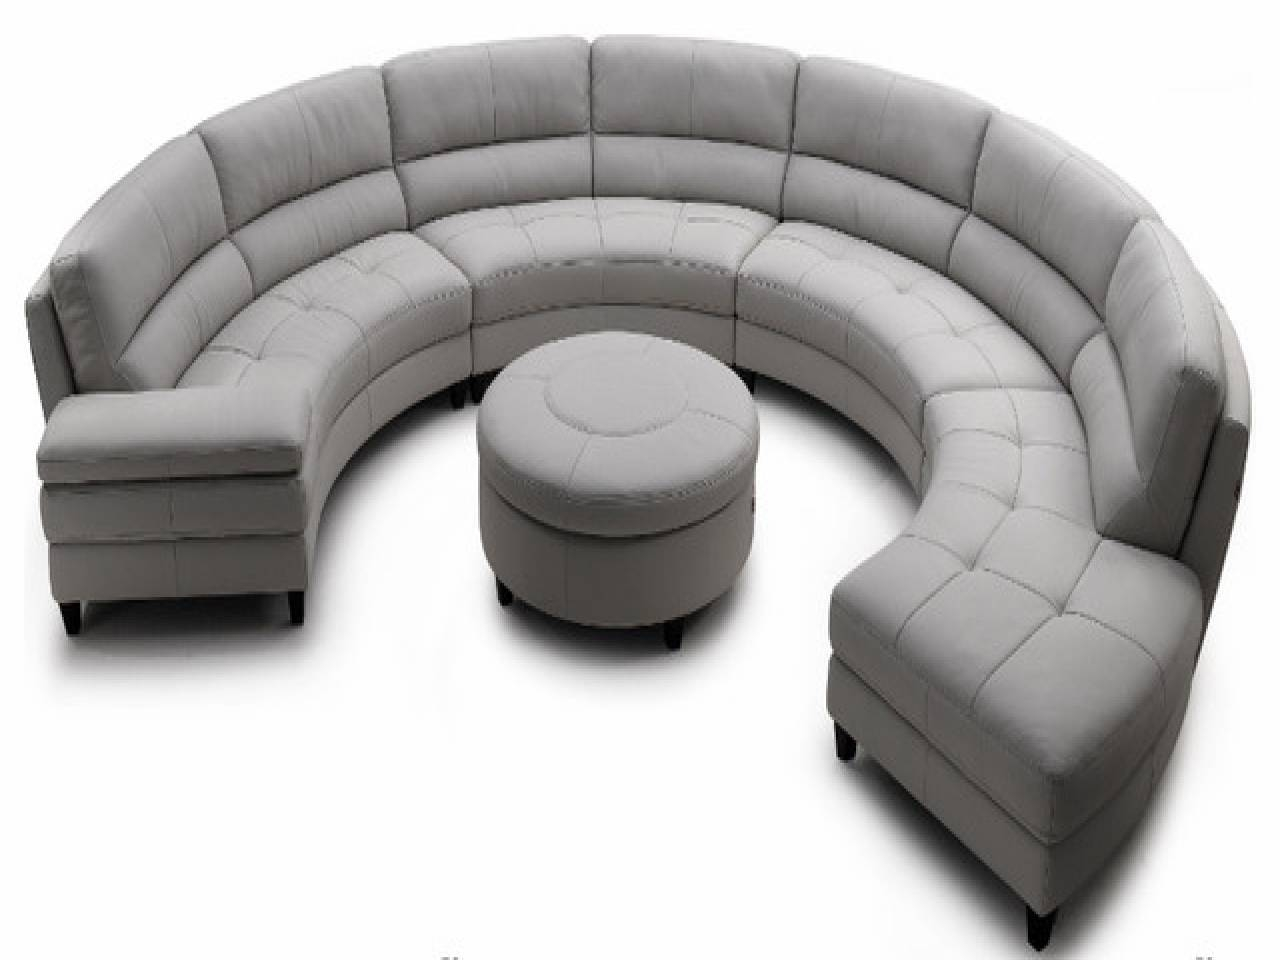 Sofas Center : Contemporary Sofas Half Round Sectional Sofa Circle Pertaining To Circular Sectional Sofa (View 28 of 30)